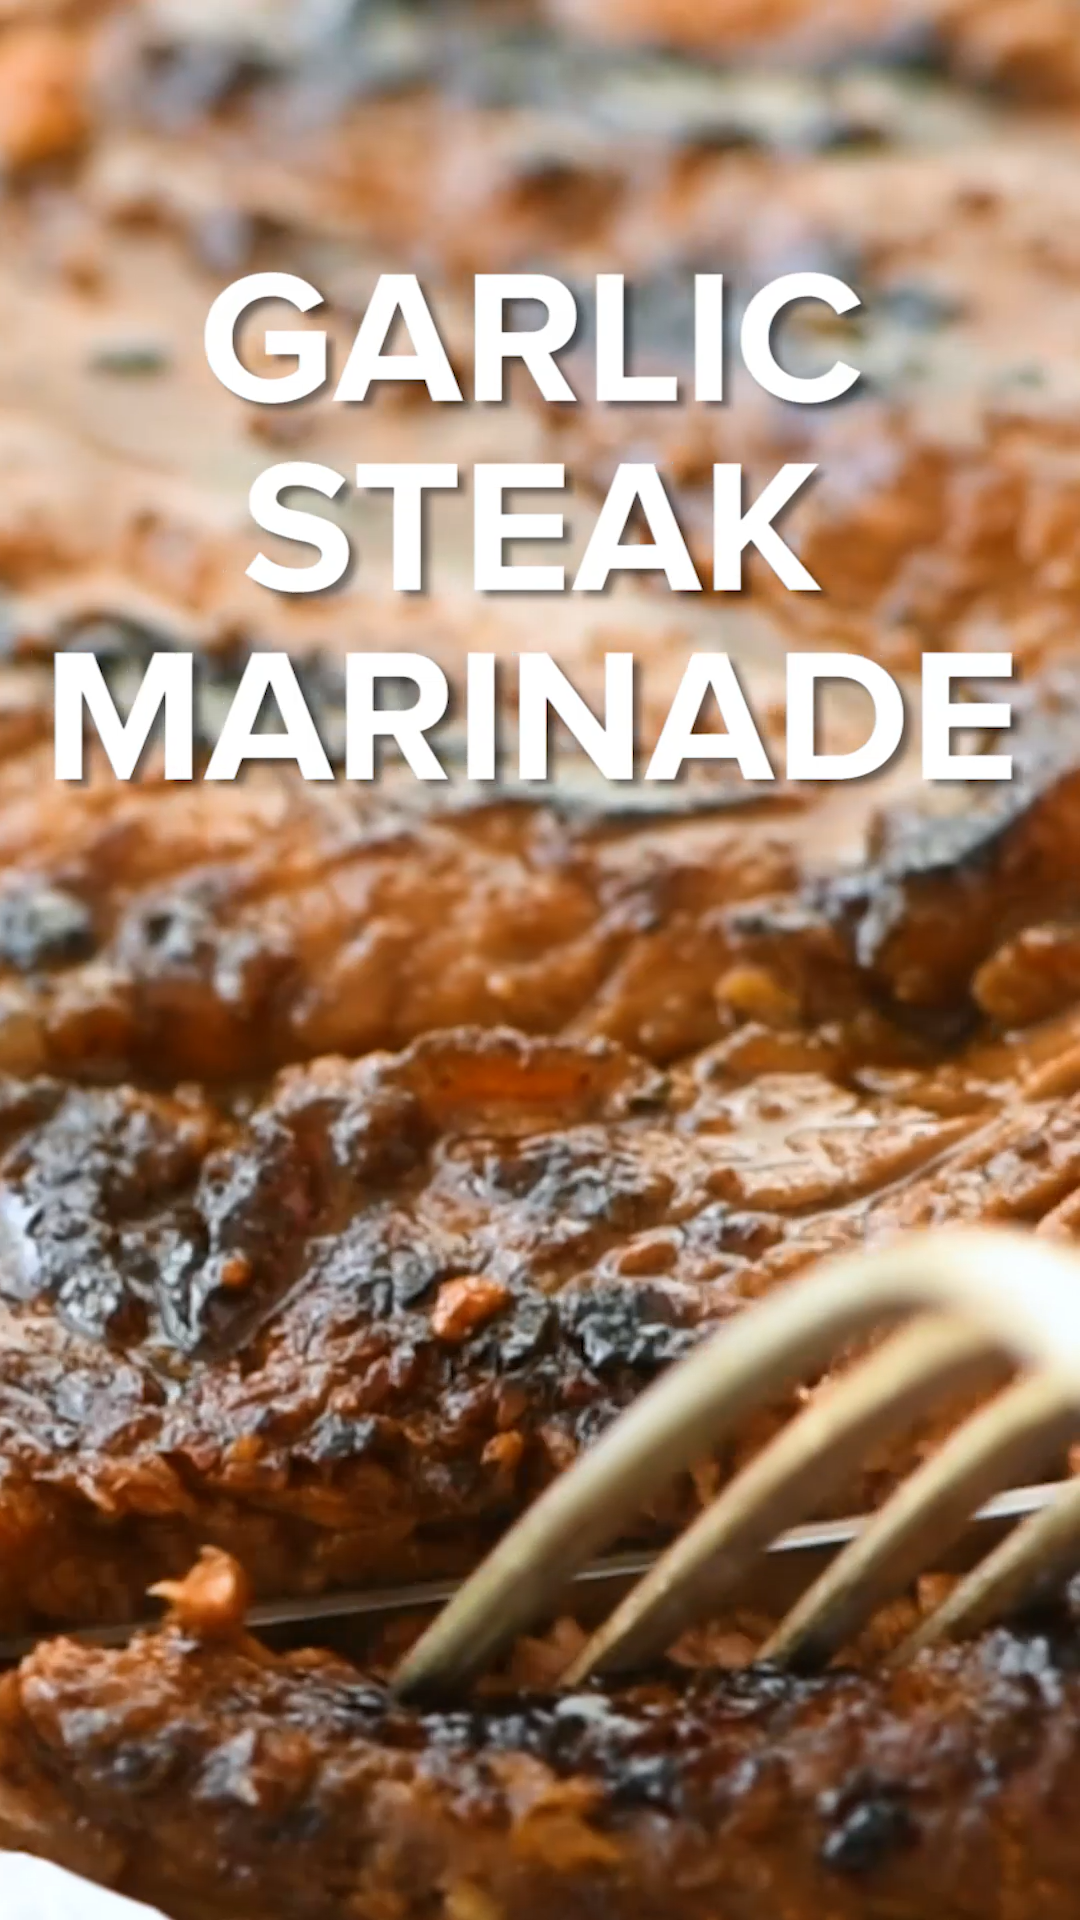 Garlic Steak Marinade Recipe